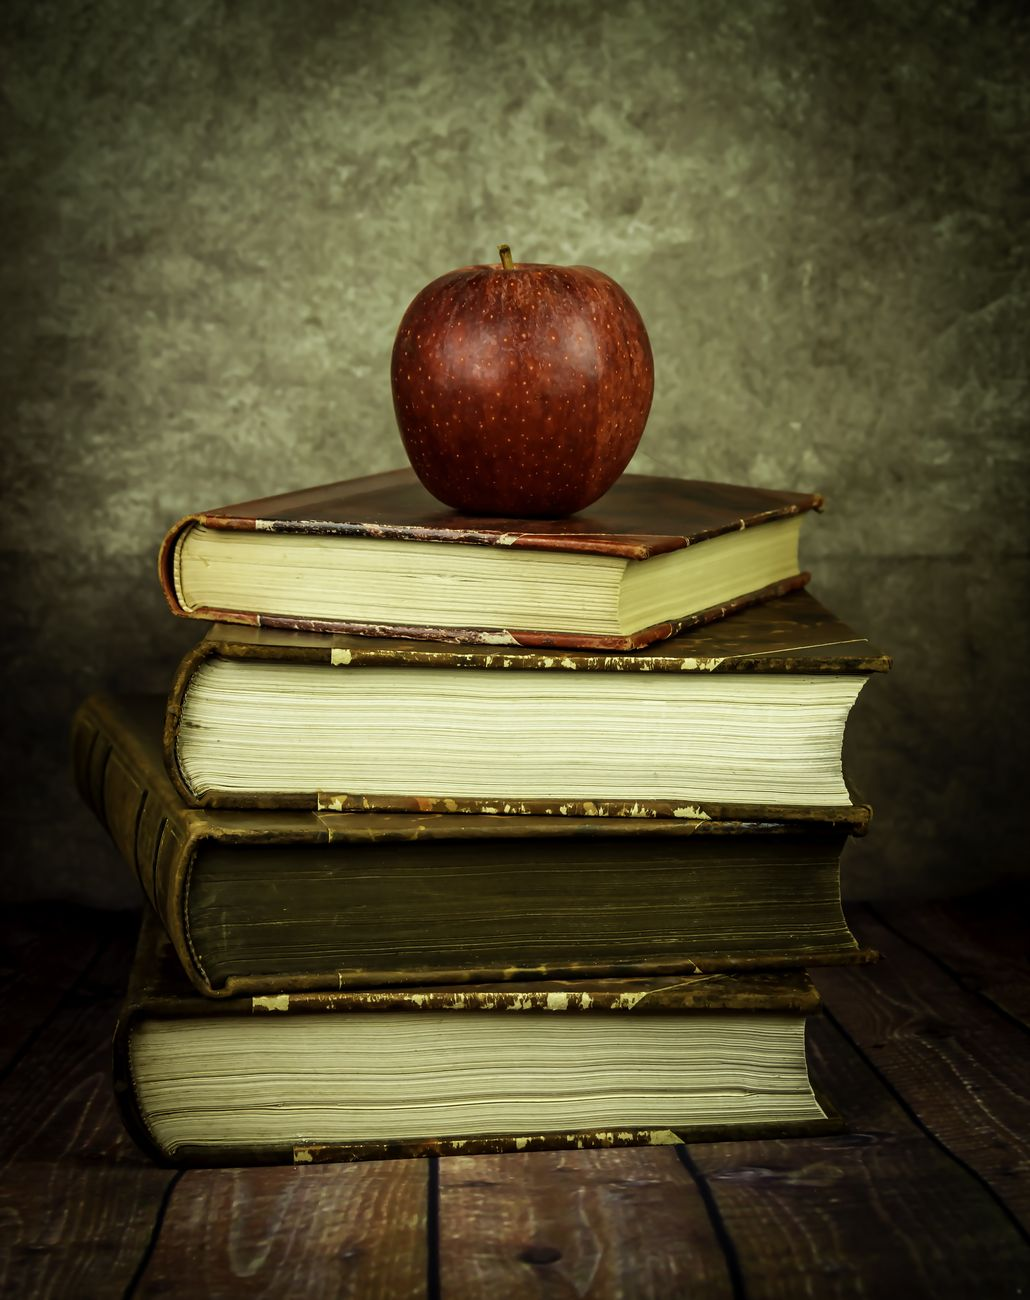 Still life pile of books and apple